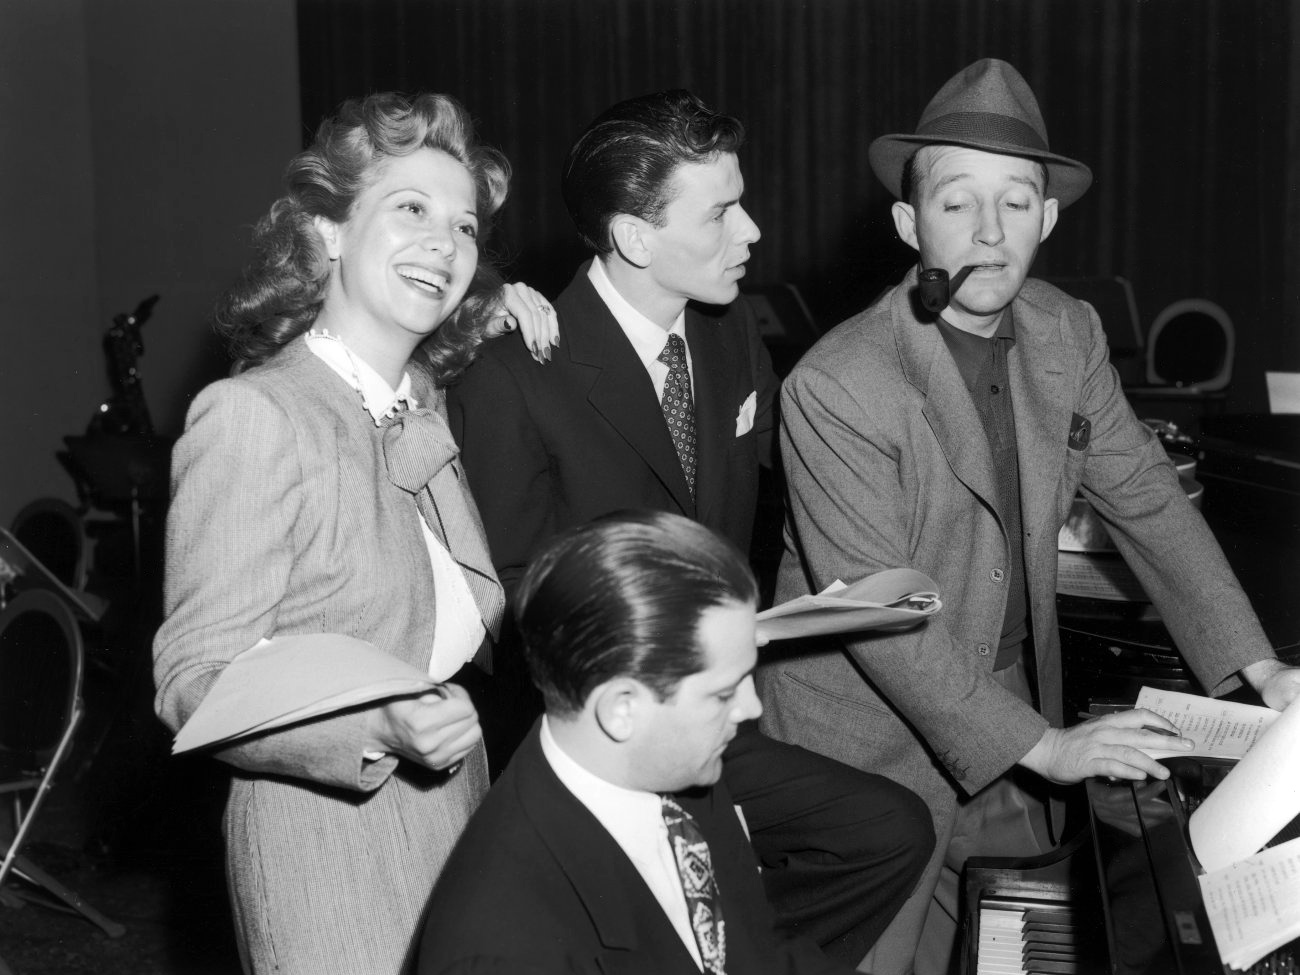 Bing Crosby with Dinah Shore and Frank Sinatra